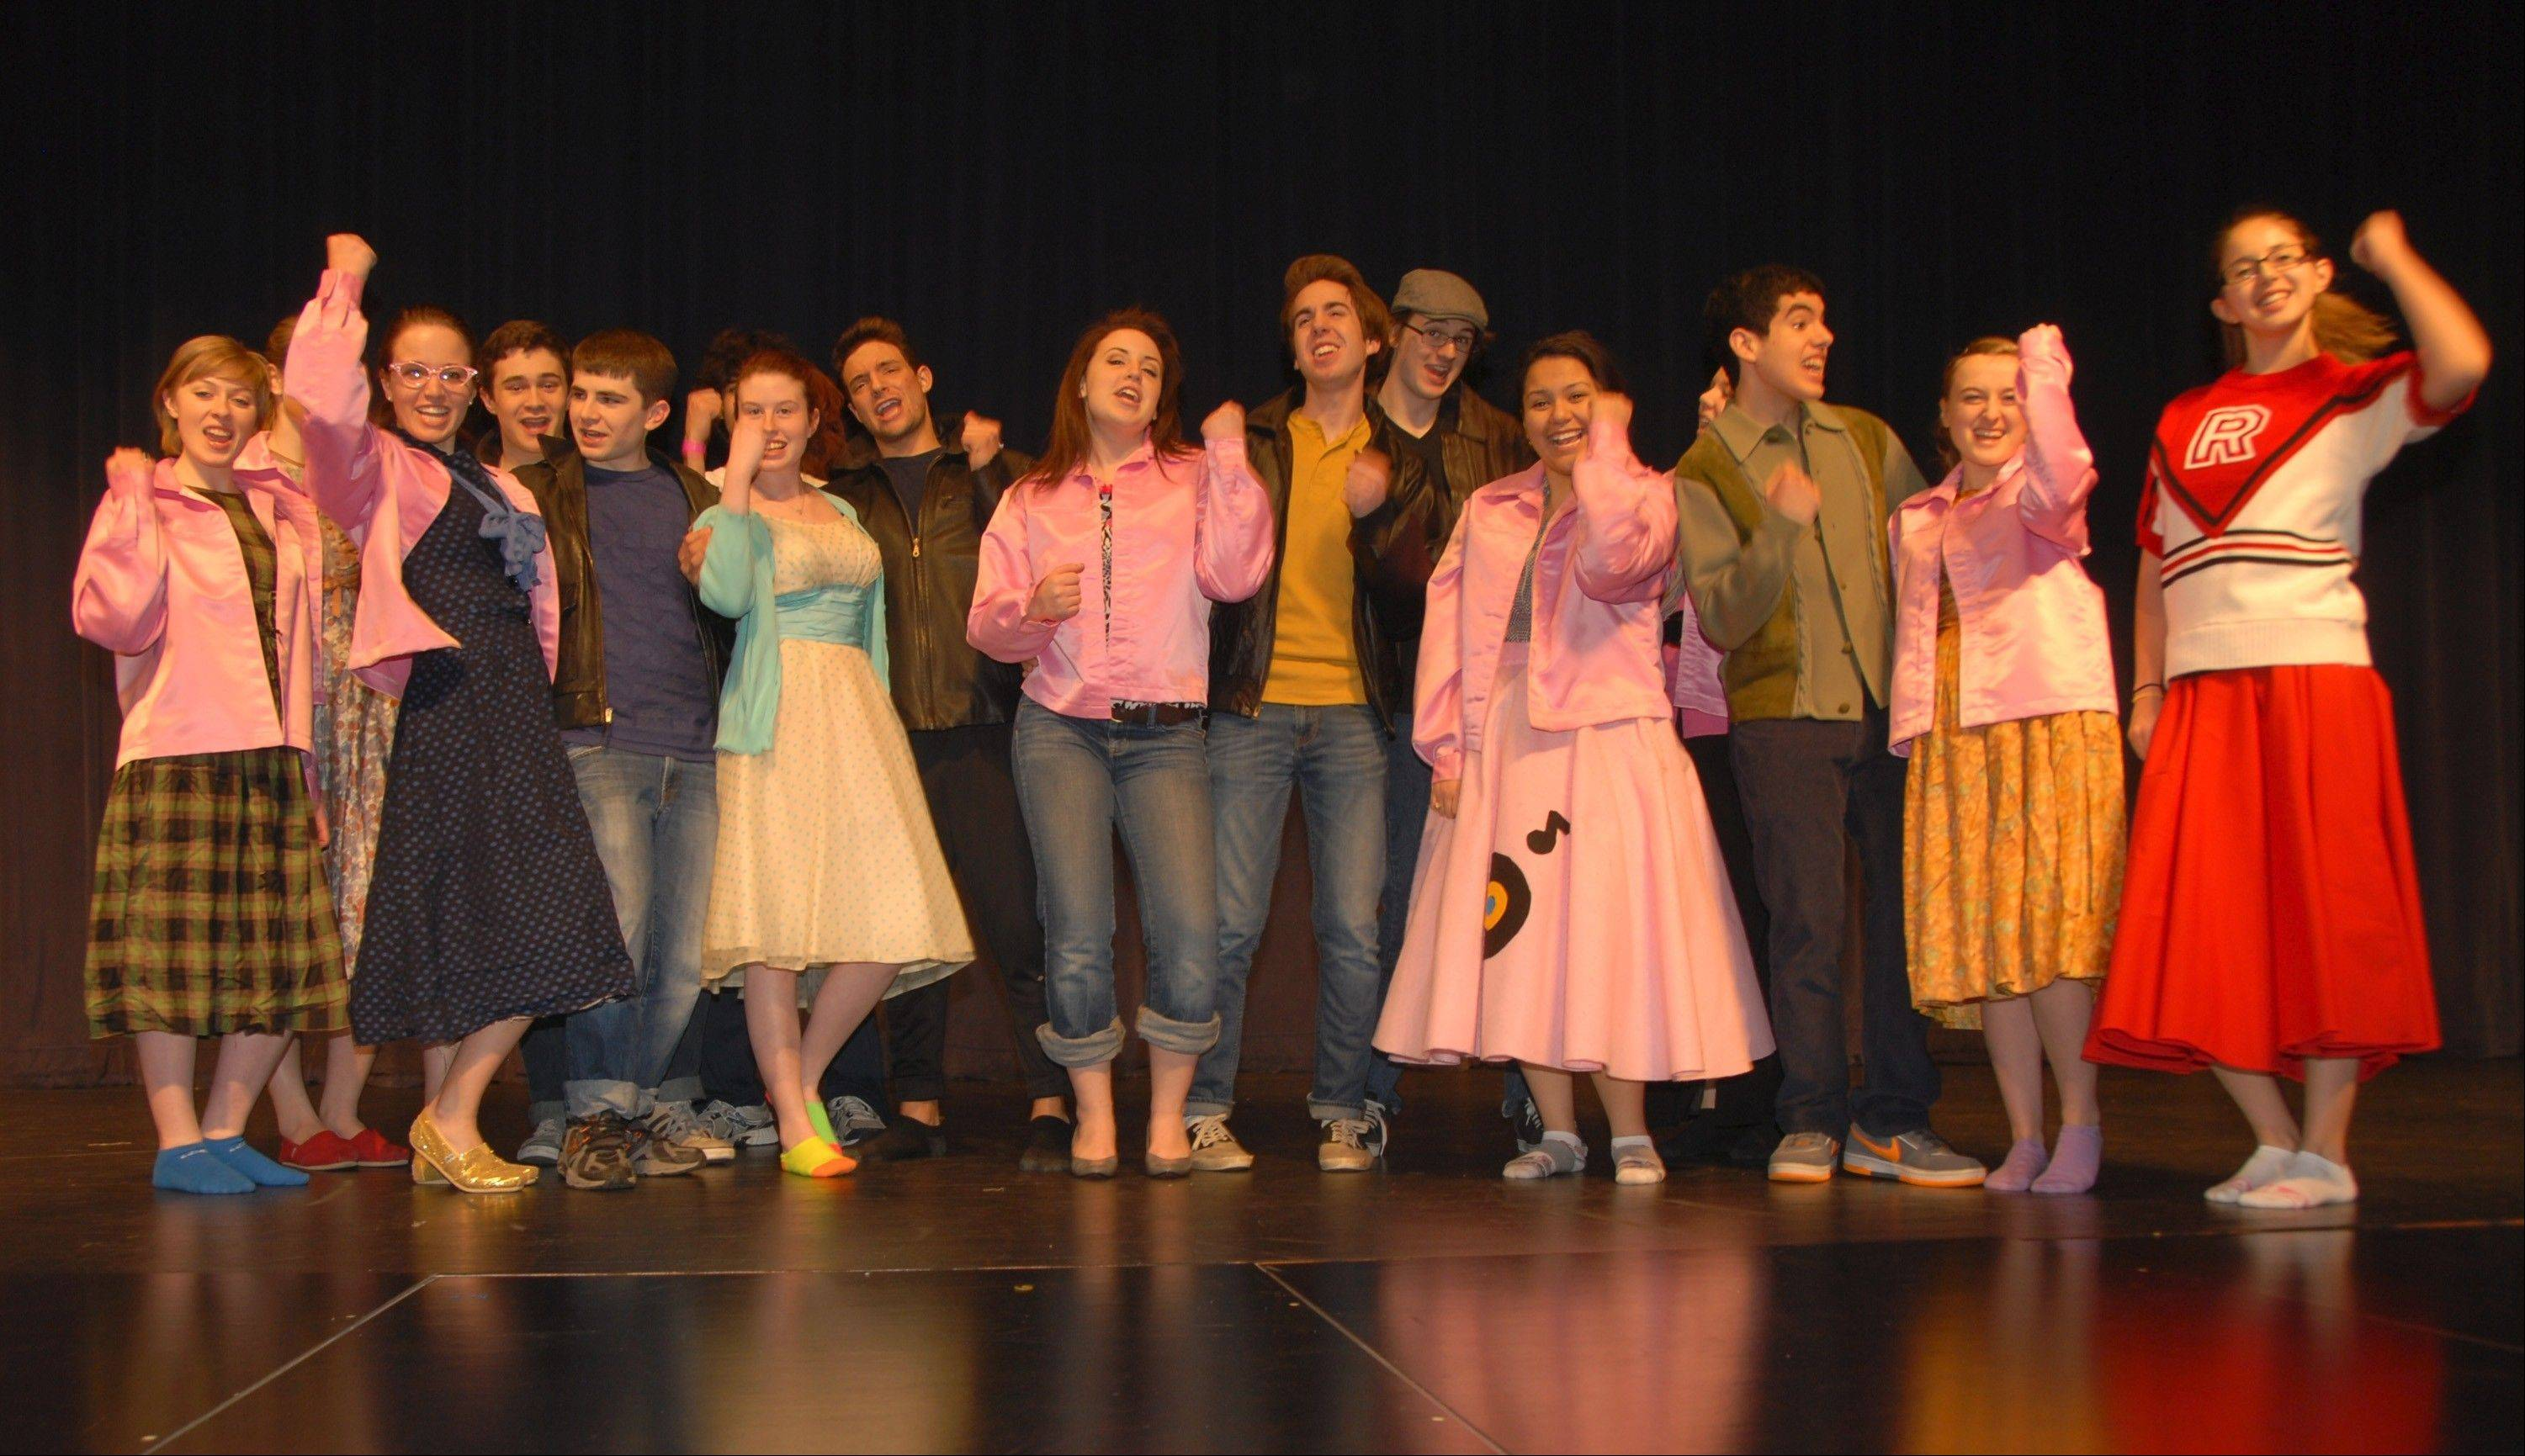 "The ""Grease"" cast sings ""We Go Together."" From left: Sarah Welz, Emmalee Gutowsky, Joseph Beaty, Brett Meyer, Joelle Kasprisin, Nick LaMore, Haley Panico, Bradley Smith, Brad Wendt, Karen Almanza, Justin Santostefano, Hannah Niesley and Hannah Schutzkus."